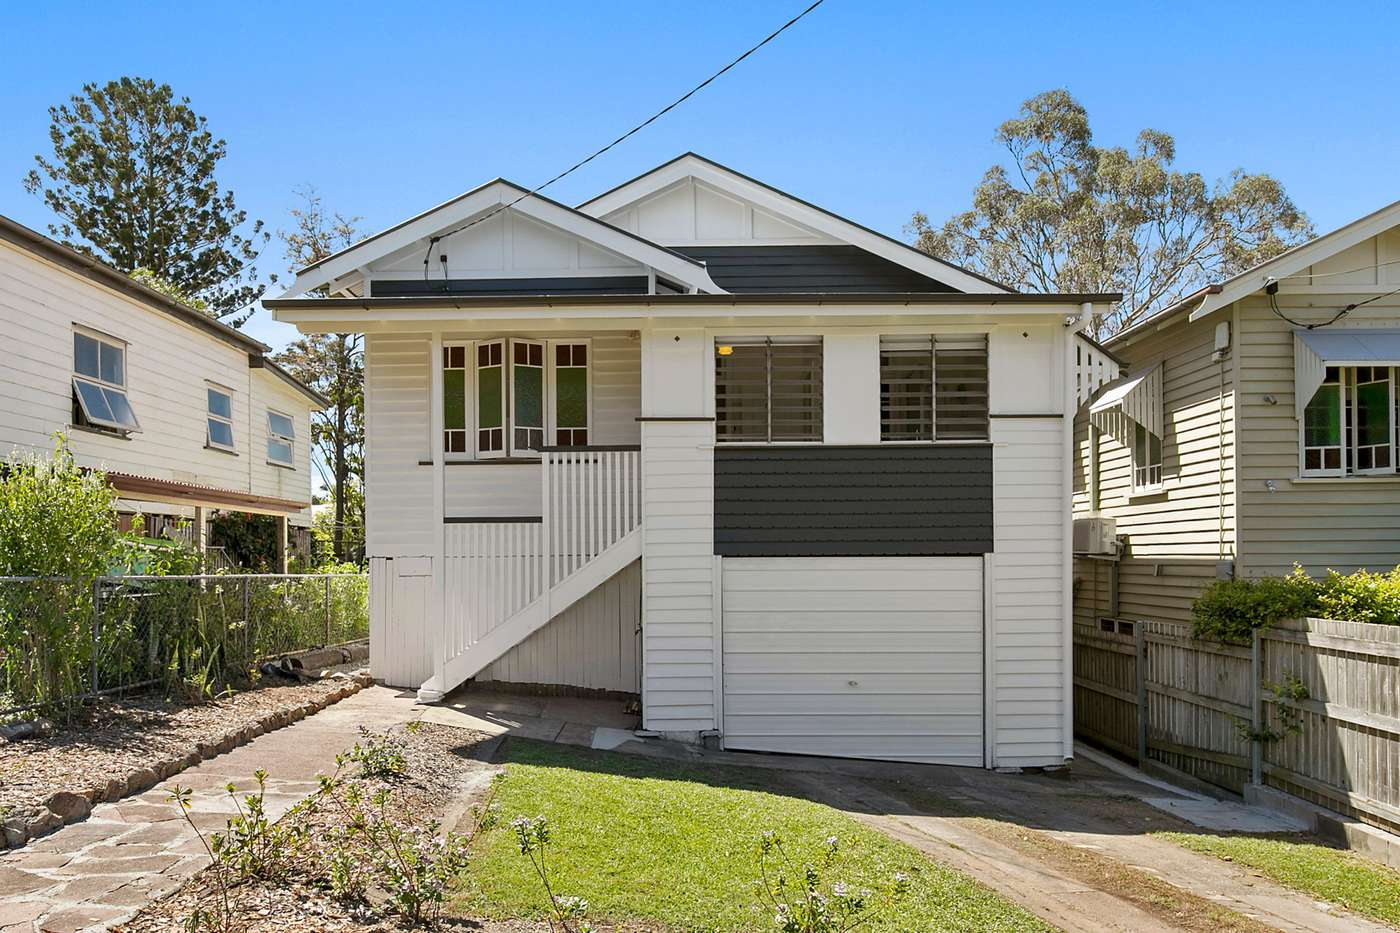 Main view of Homely house listing, 10 Cottell Street, Norman Park, QLD 4170